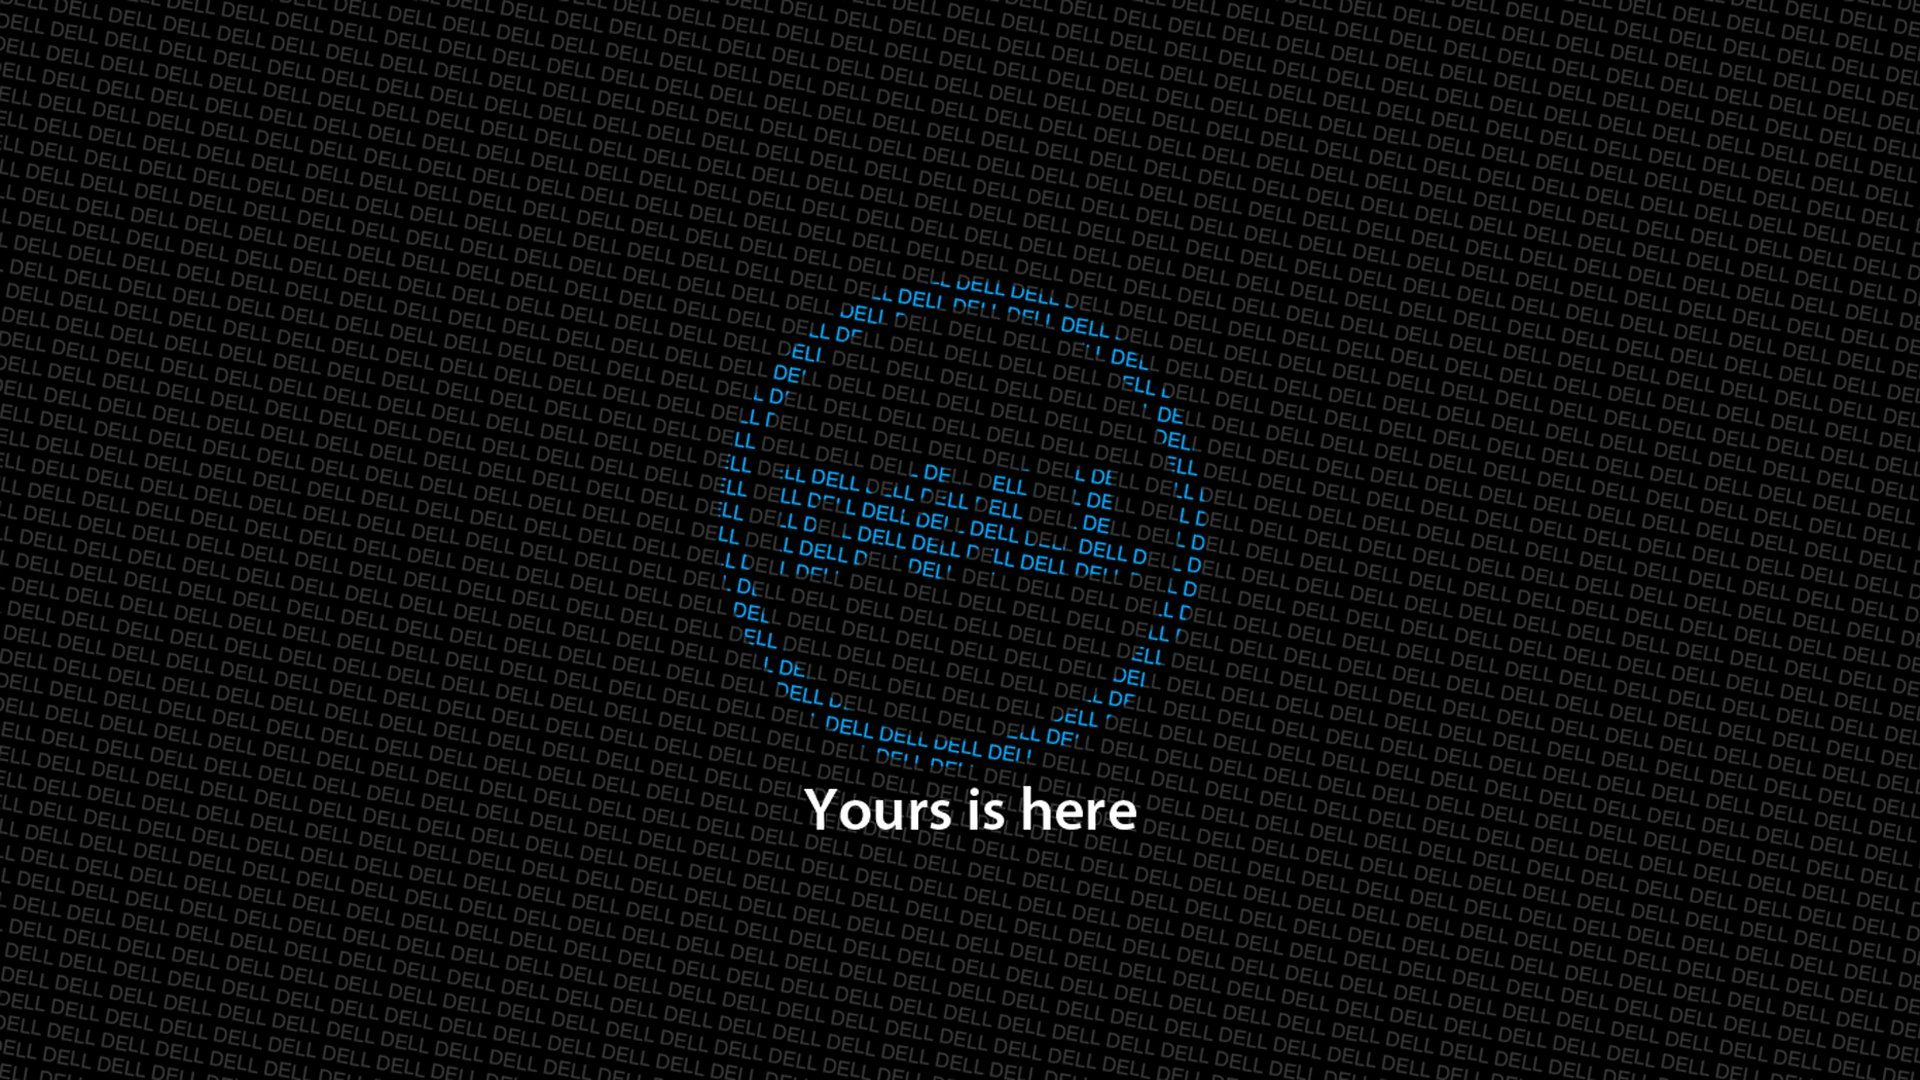 1920x1080 32 Dell Wallpapers For Free Download